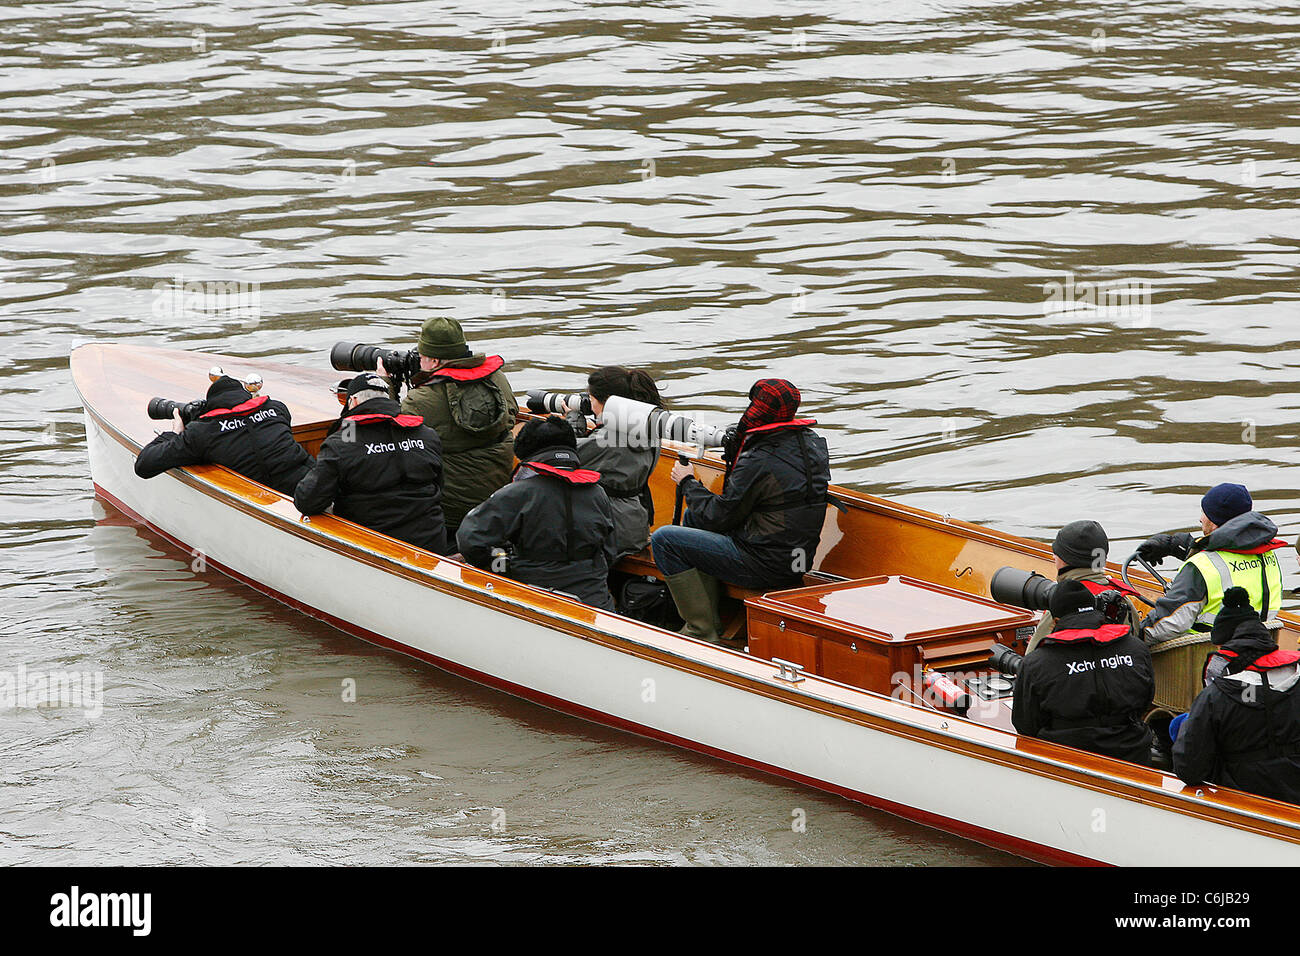 Photographers at the start of the 156th Oxford vs Cambridge boat race on River Thames London, England - 03.04.10 - Stock Image